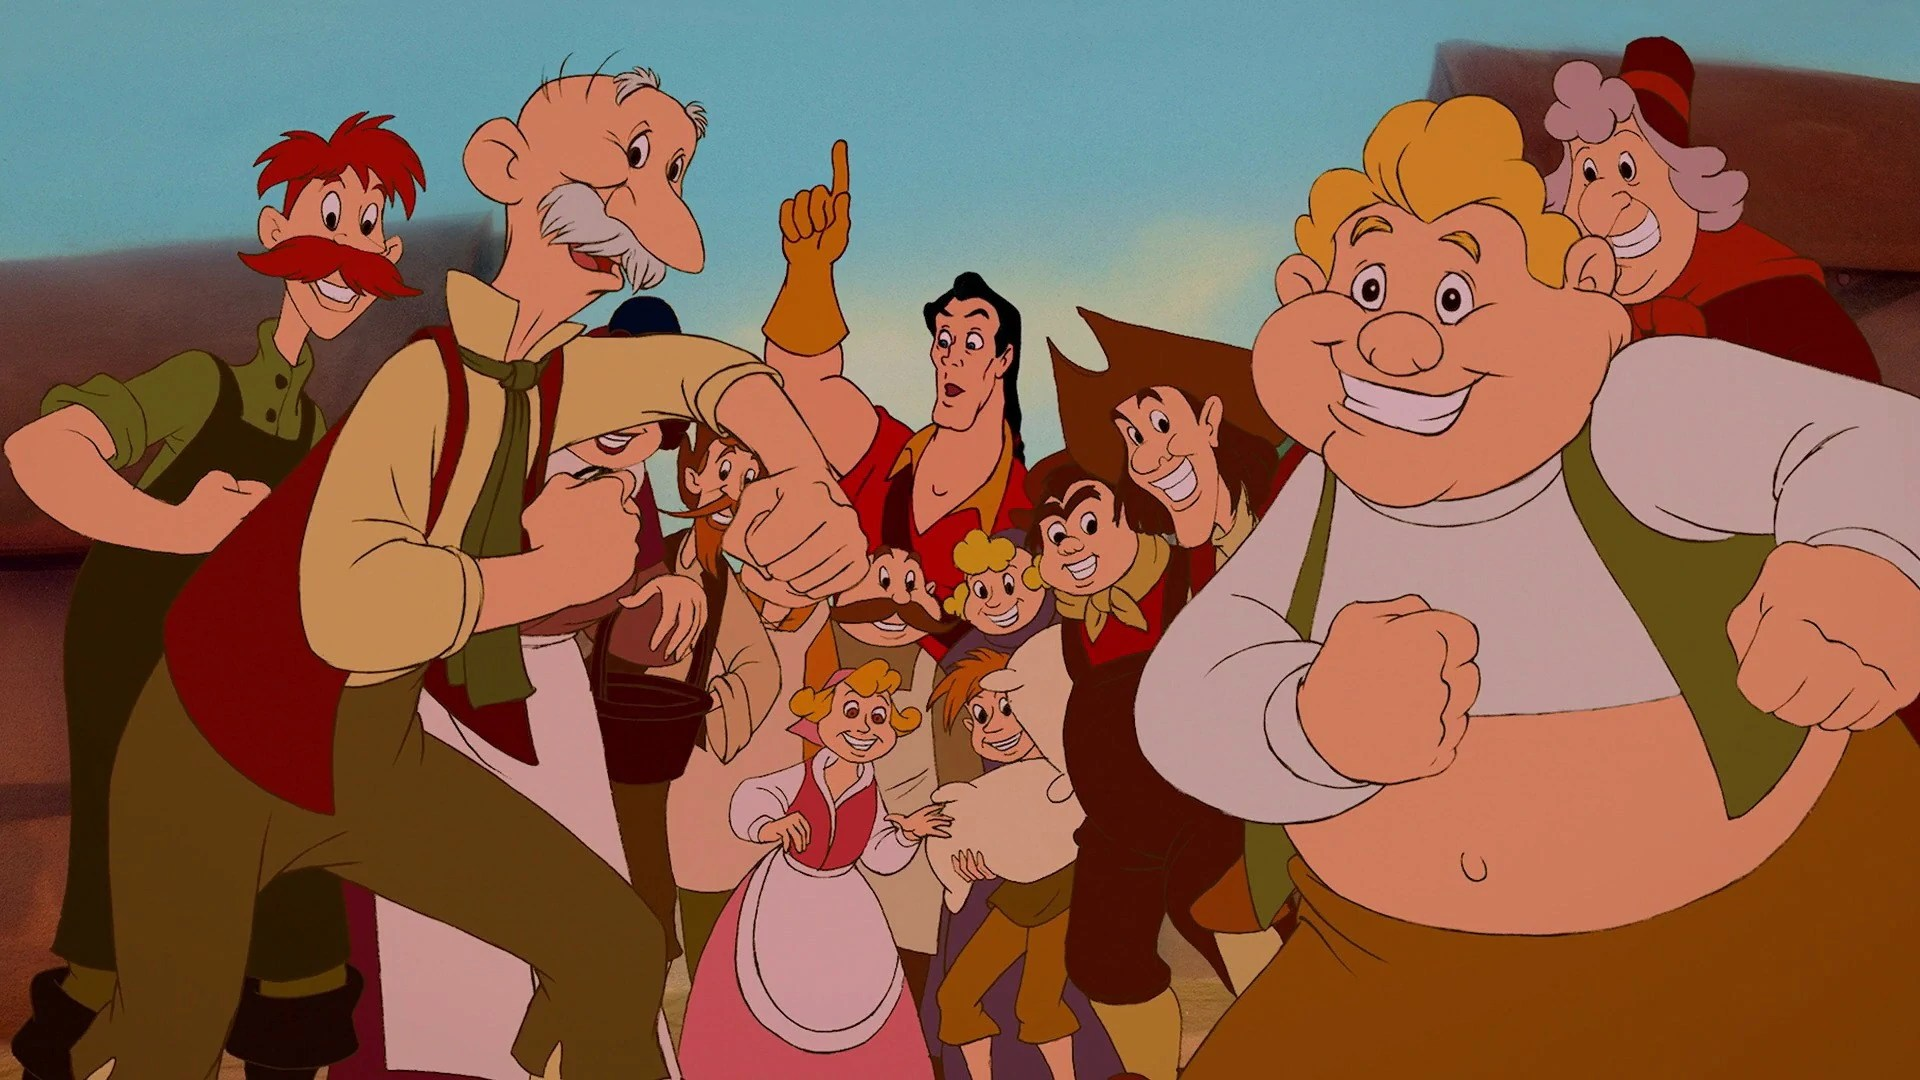 The Smurfs 2 3d Live Wallpaper Villagers Beauty And The Beast Disney Wiki Fandom